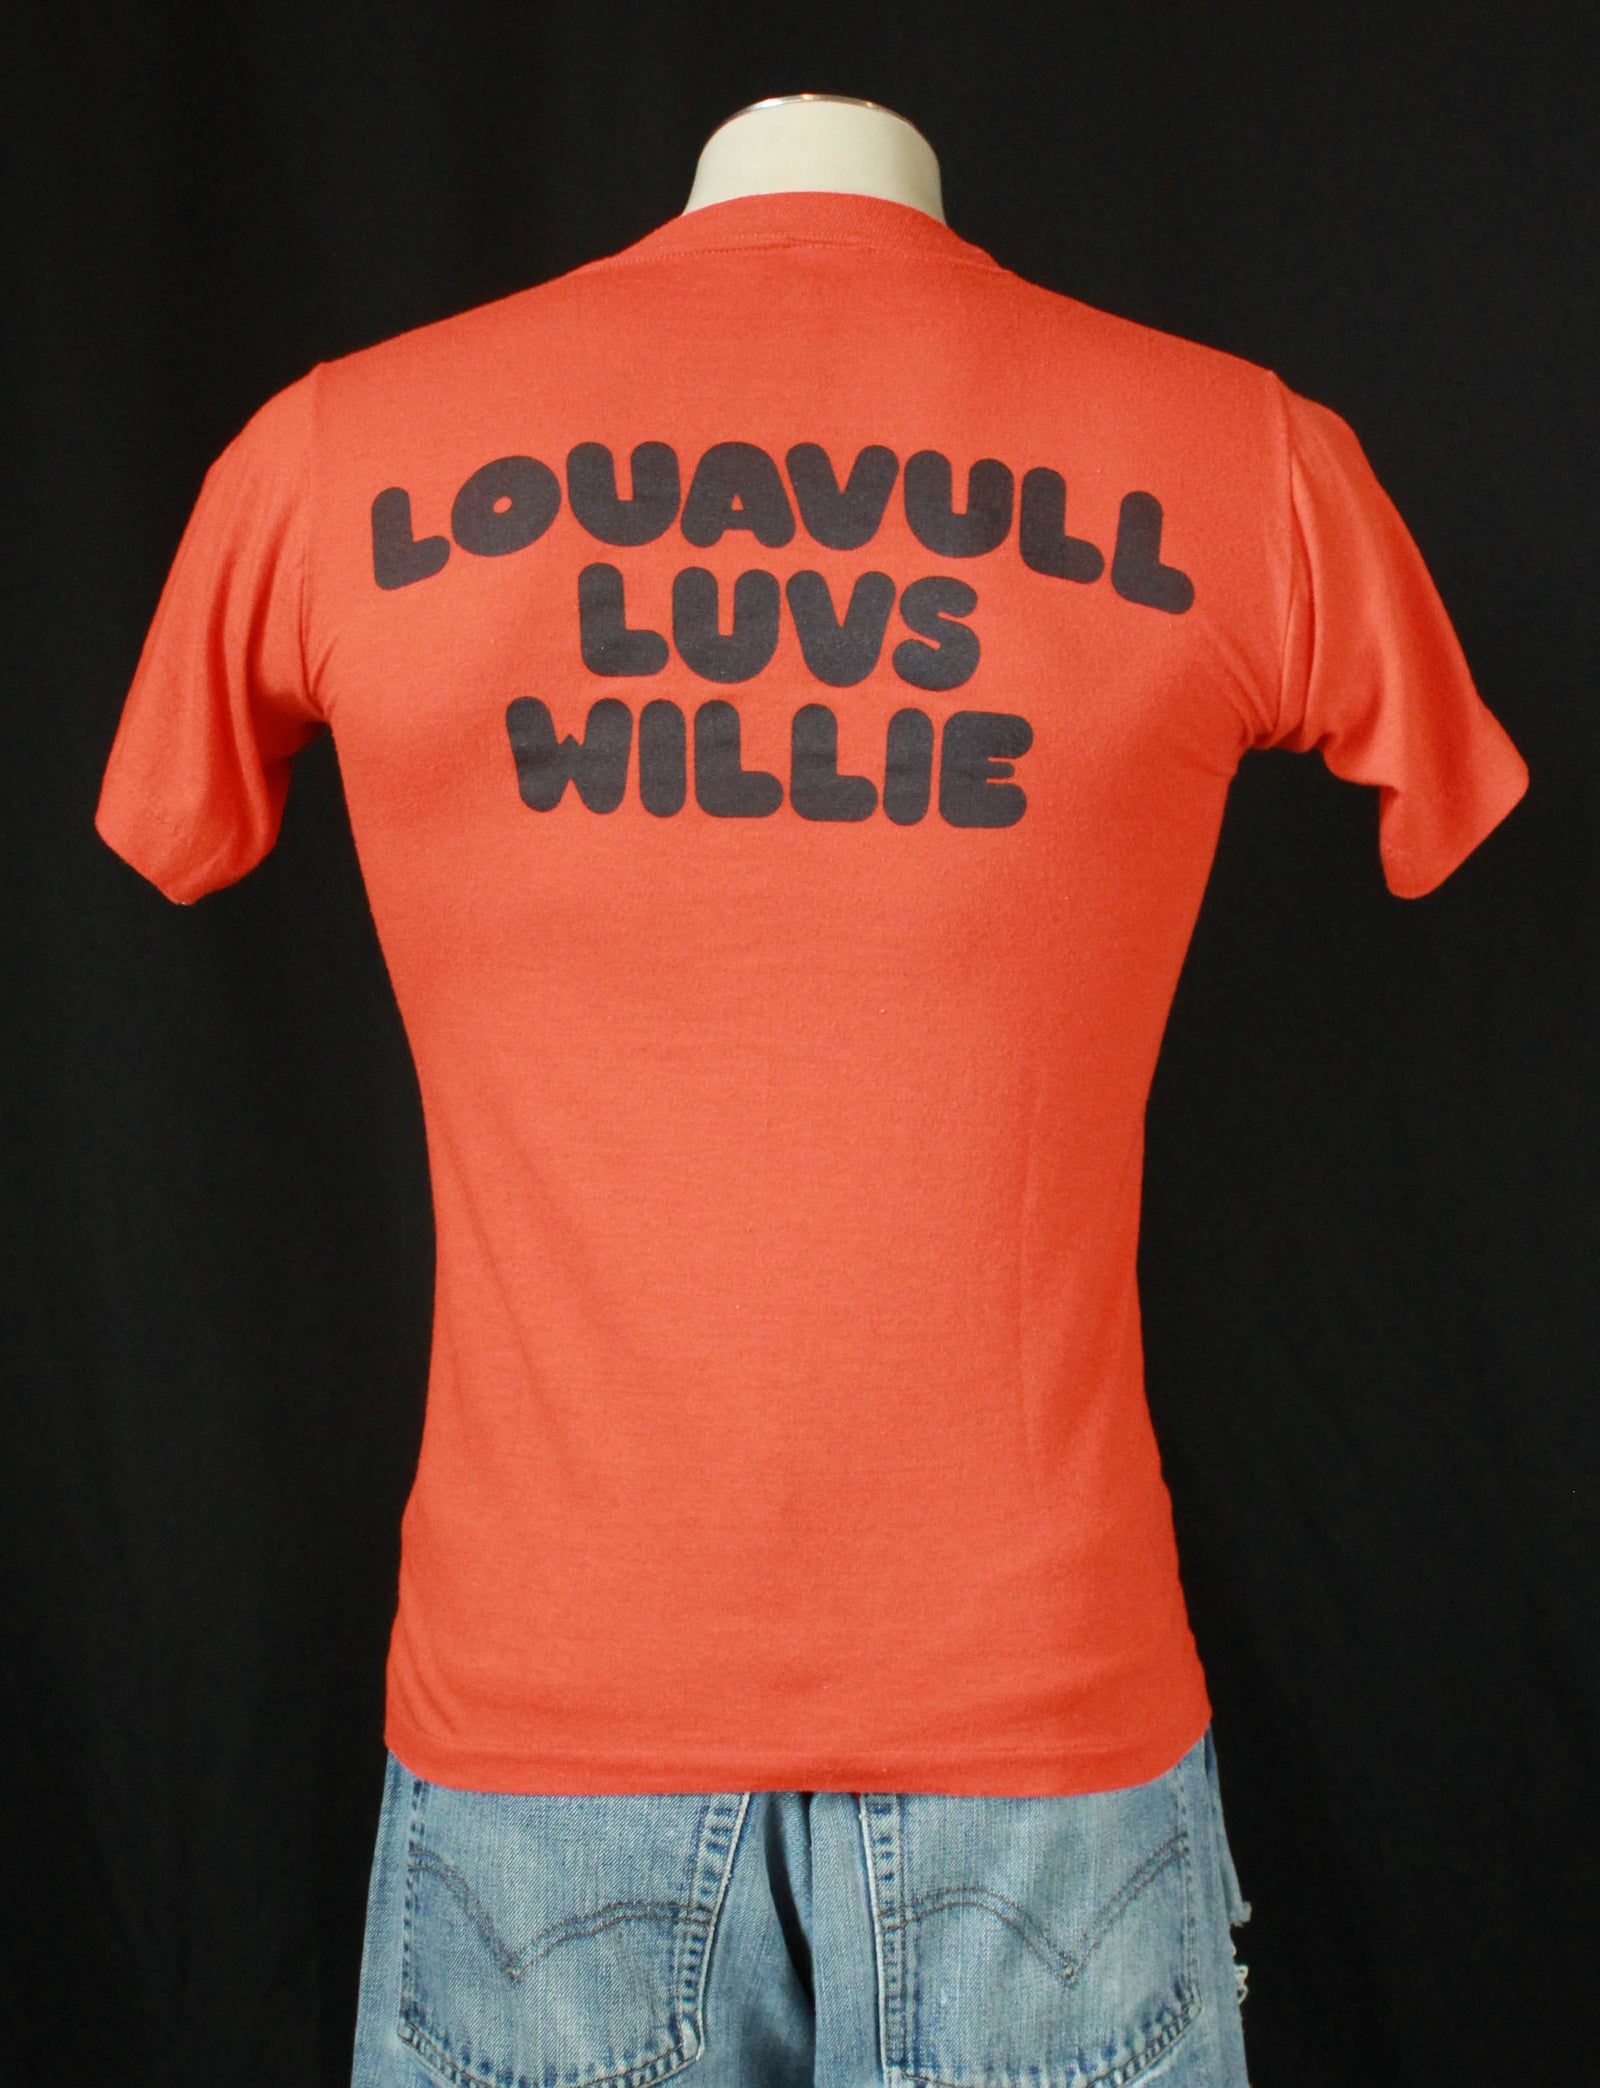 Vintage Willie Nelson Concert T Shirt 80's Live Louavull Luvs Willie - Small